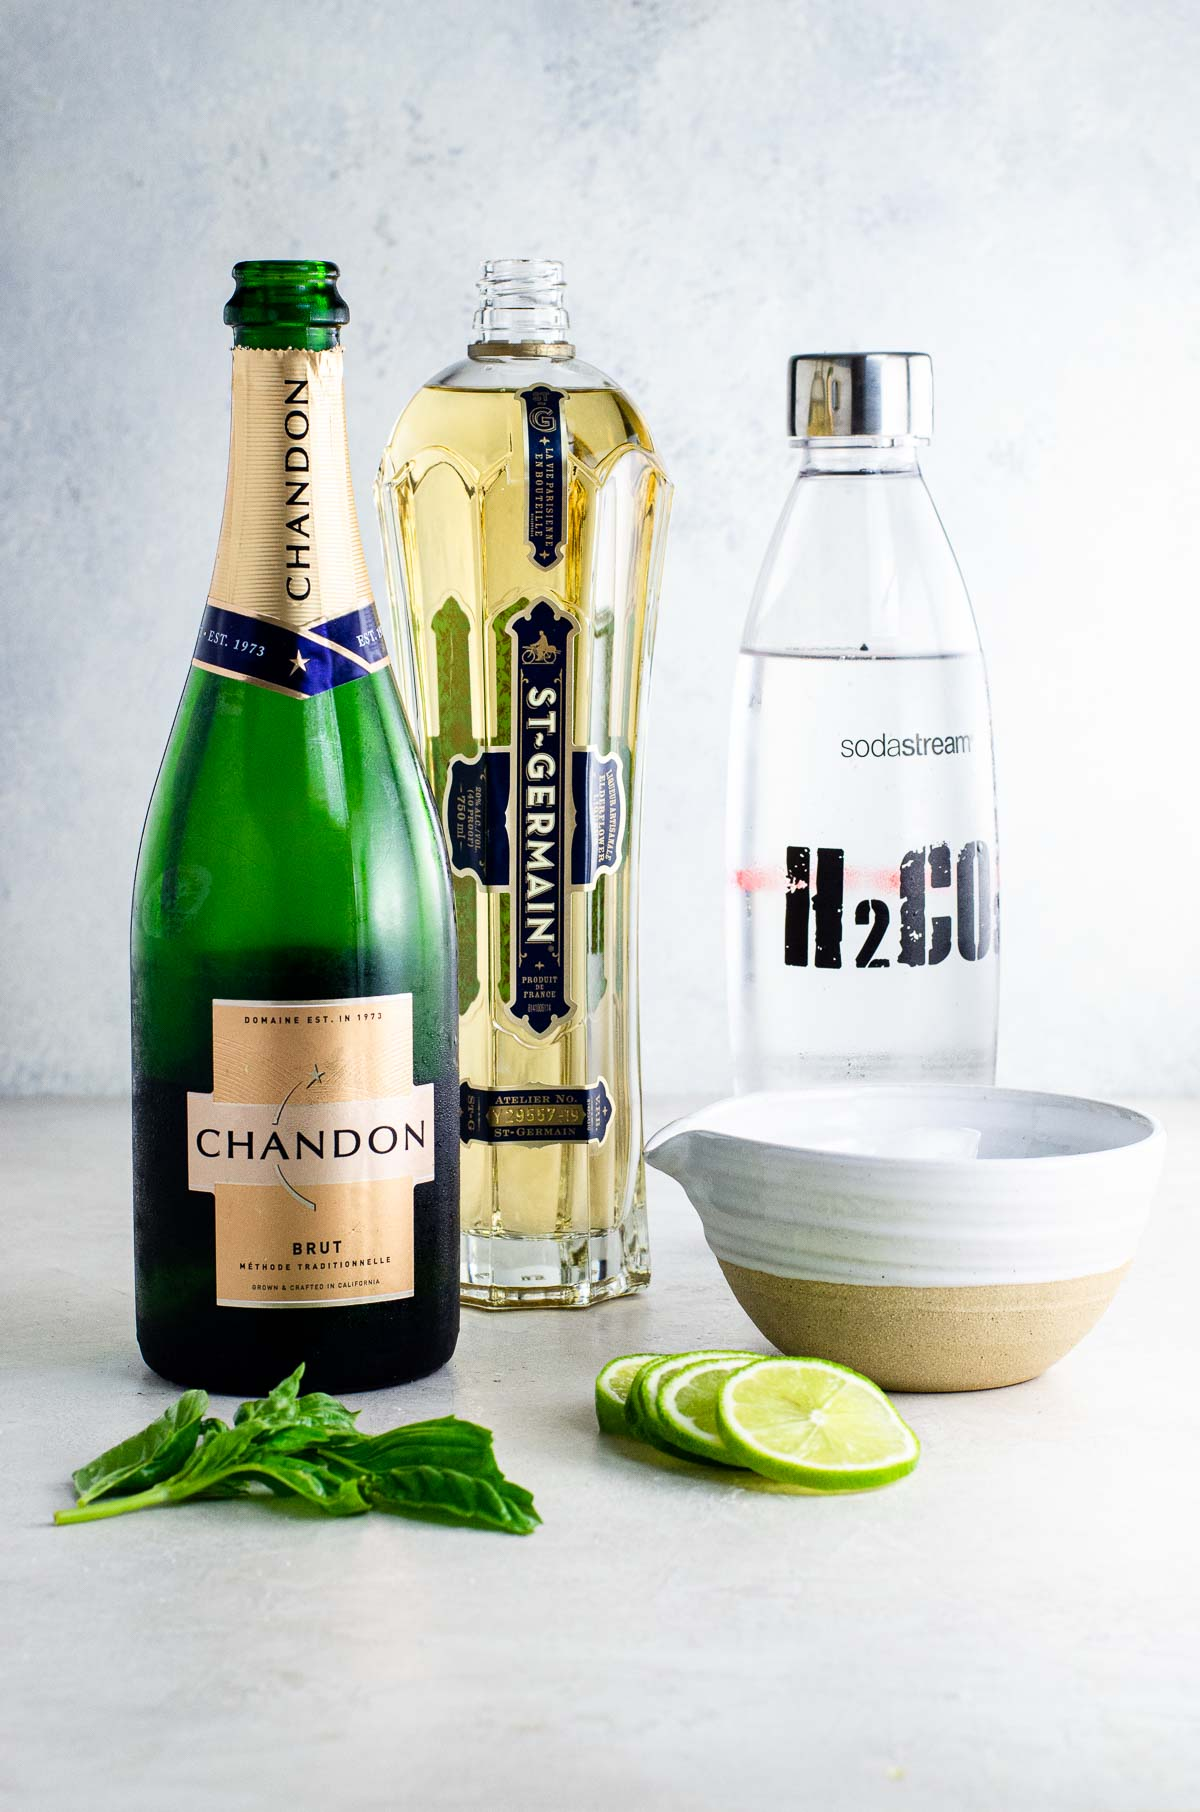 chandon brut, st-germain, sparkling water, basil, lime slices, ice